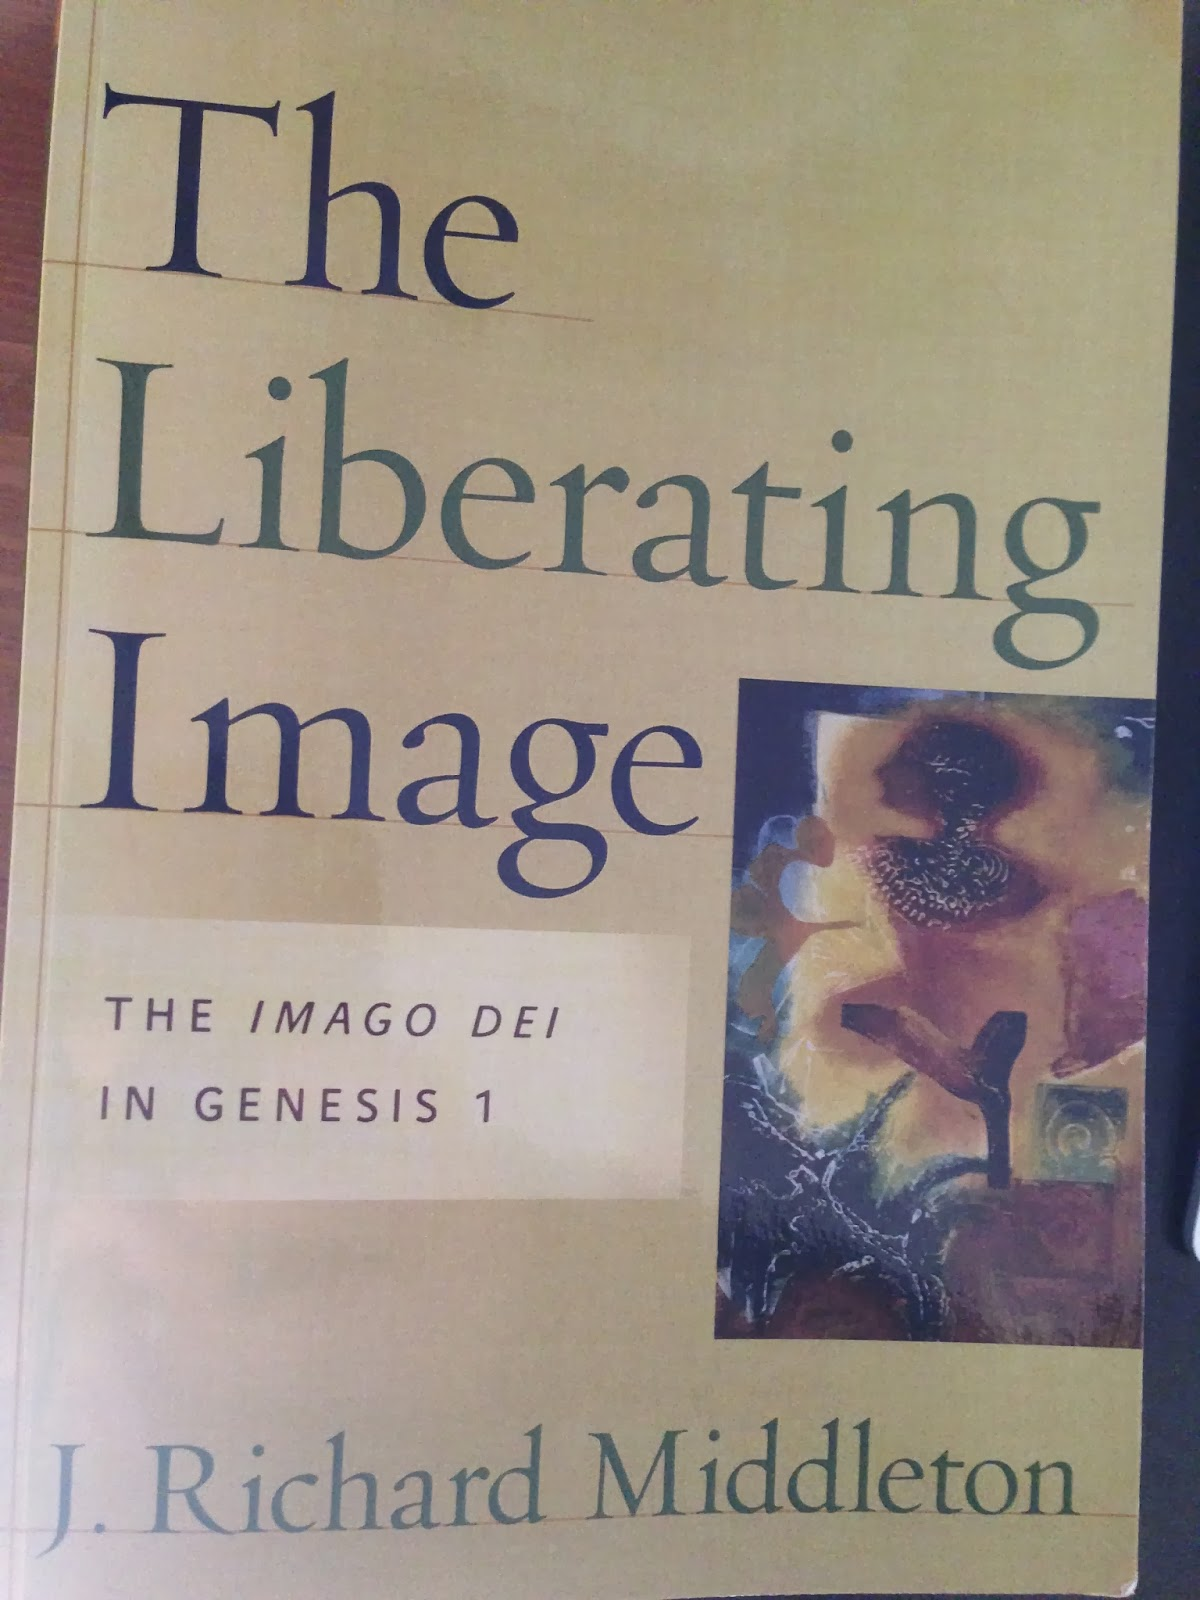 the imago and imitatio dei essay The simplest definition of imago dei is the image of god in genesis god created man, then created woman out of the man both were created equally in his image we can find this in the scripture readings of genesis 1:27.